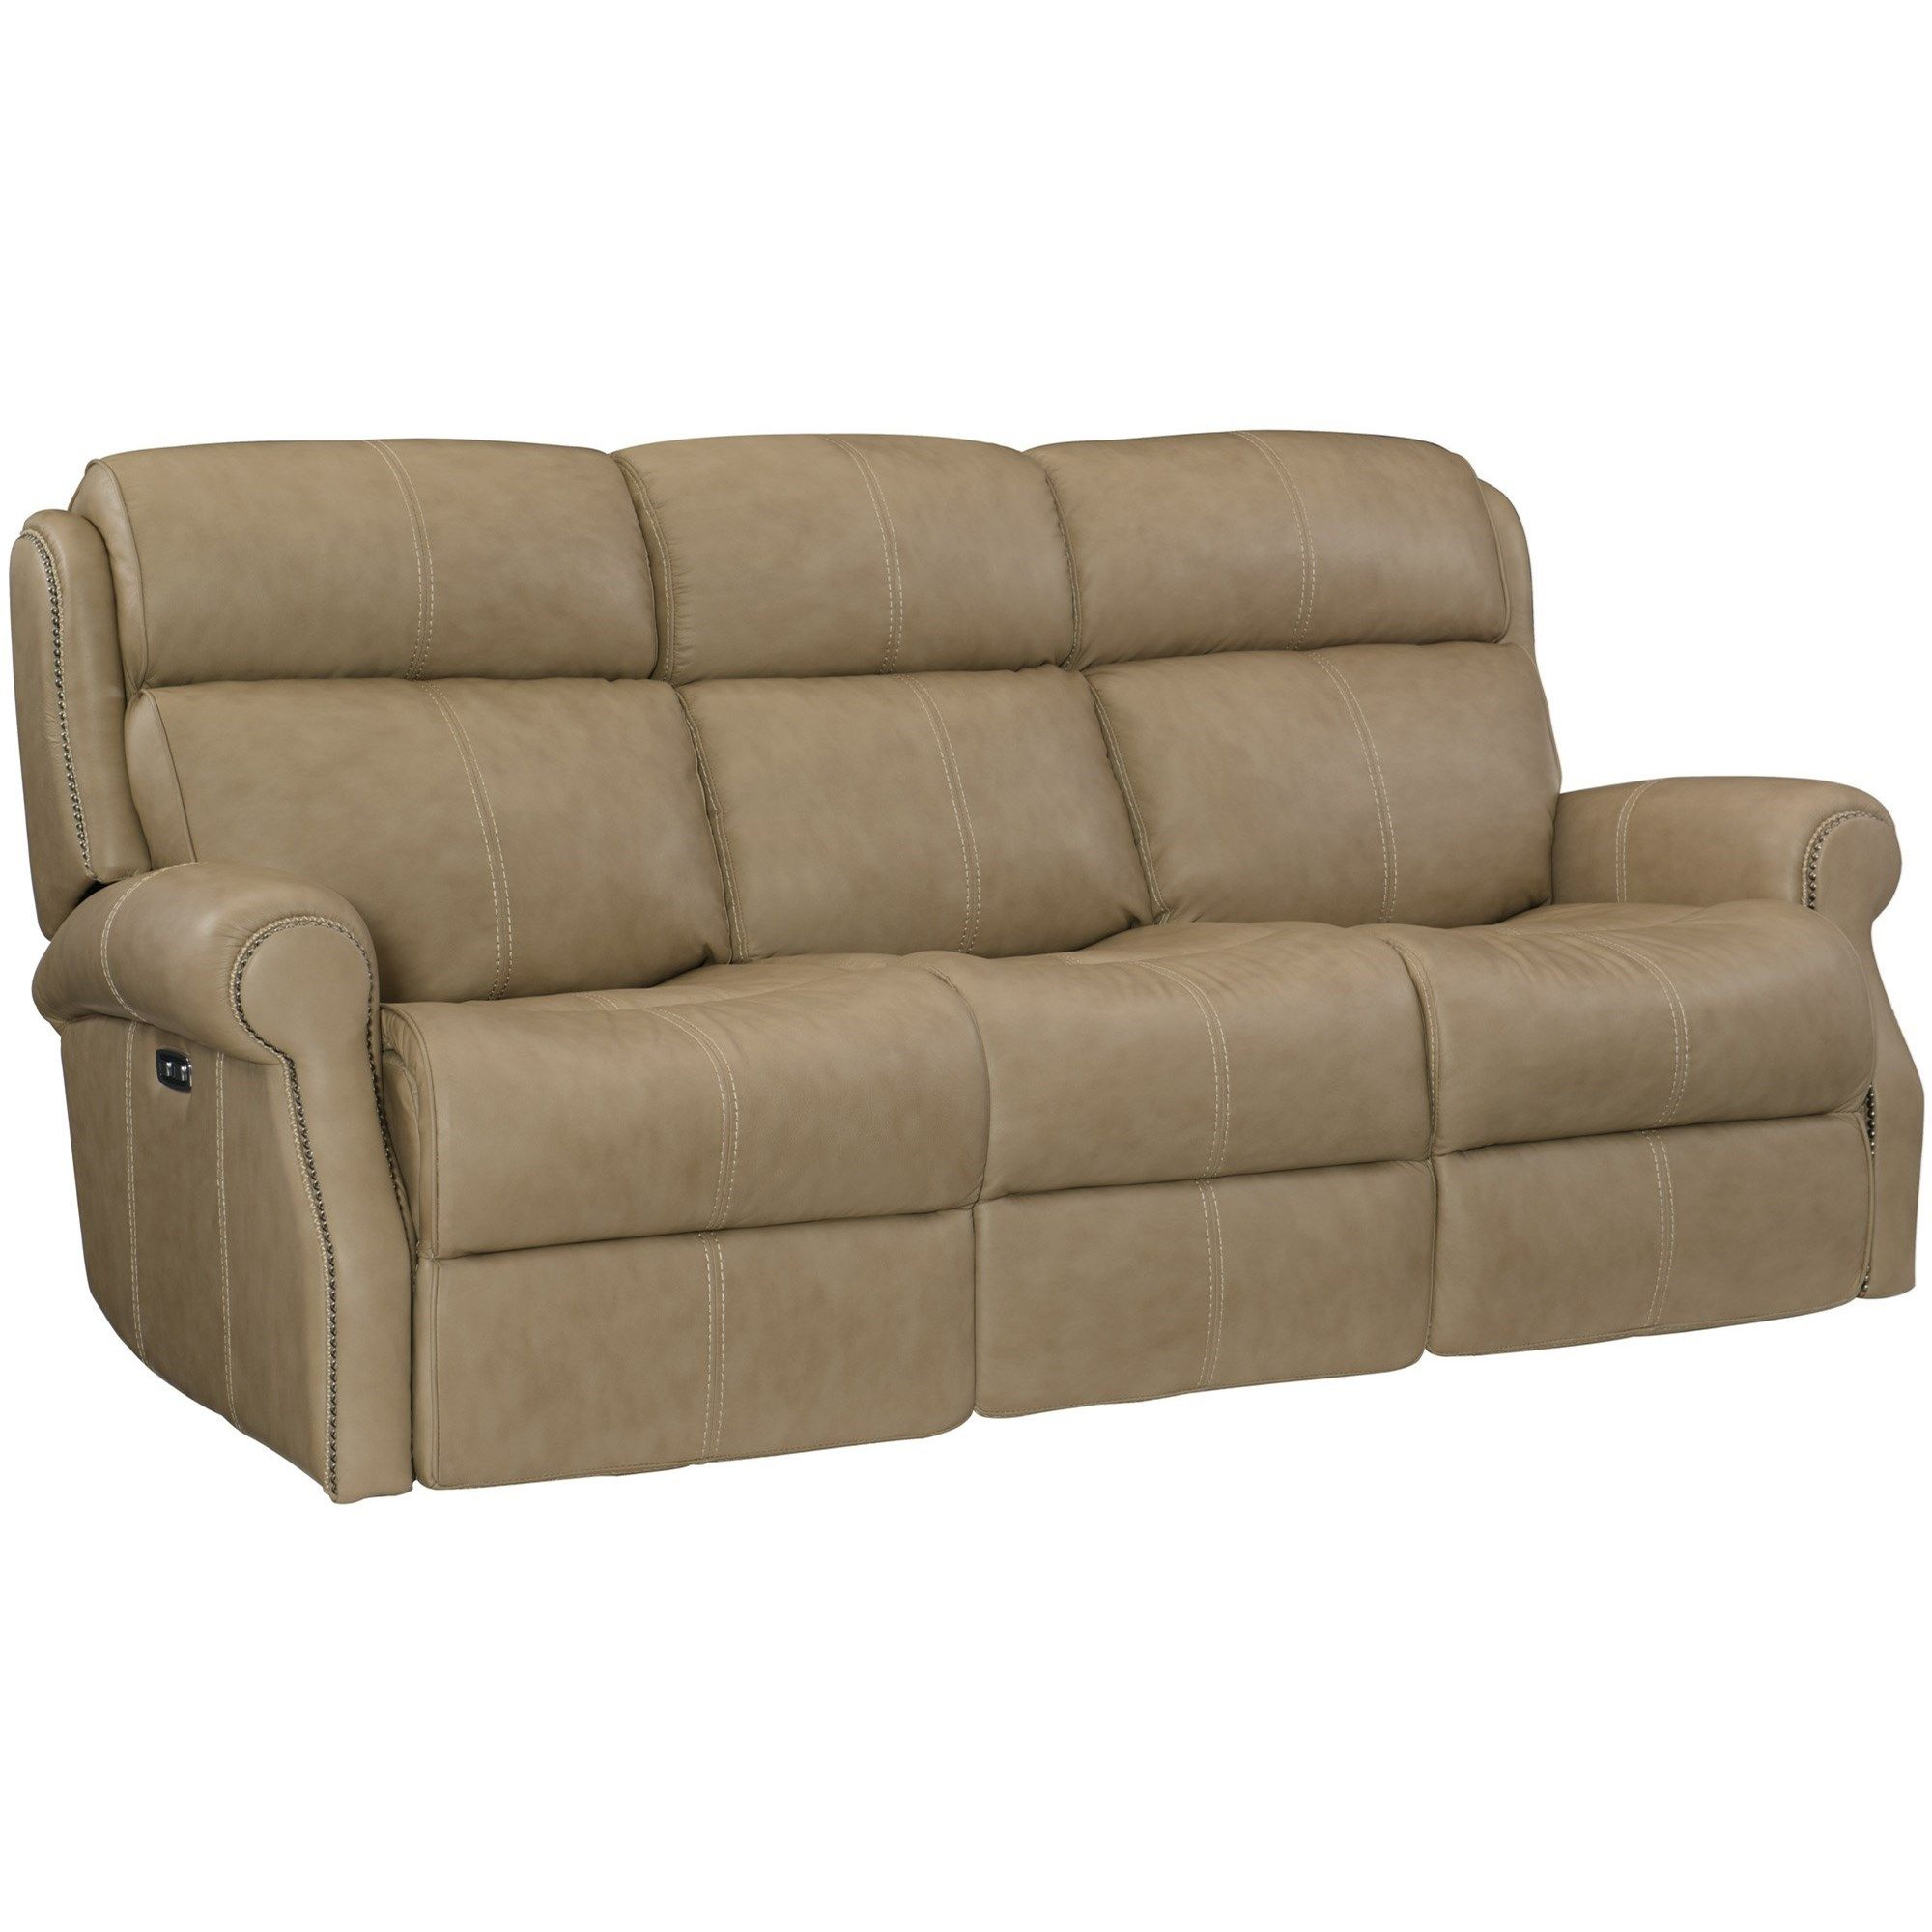 Phenomenal Mcgwire Leather Power Reclining Sofa With Power Tilt Dailytribune Chair Design For Home Dailytribuneorg